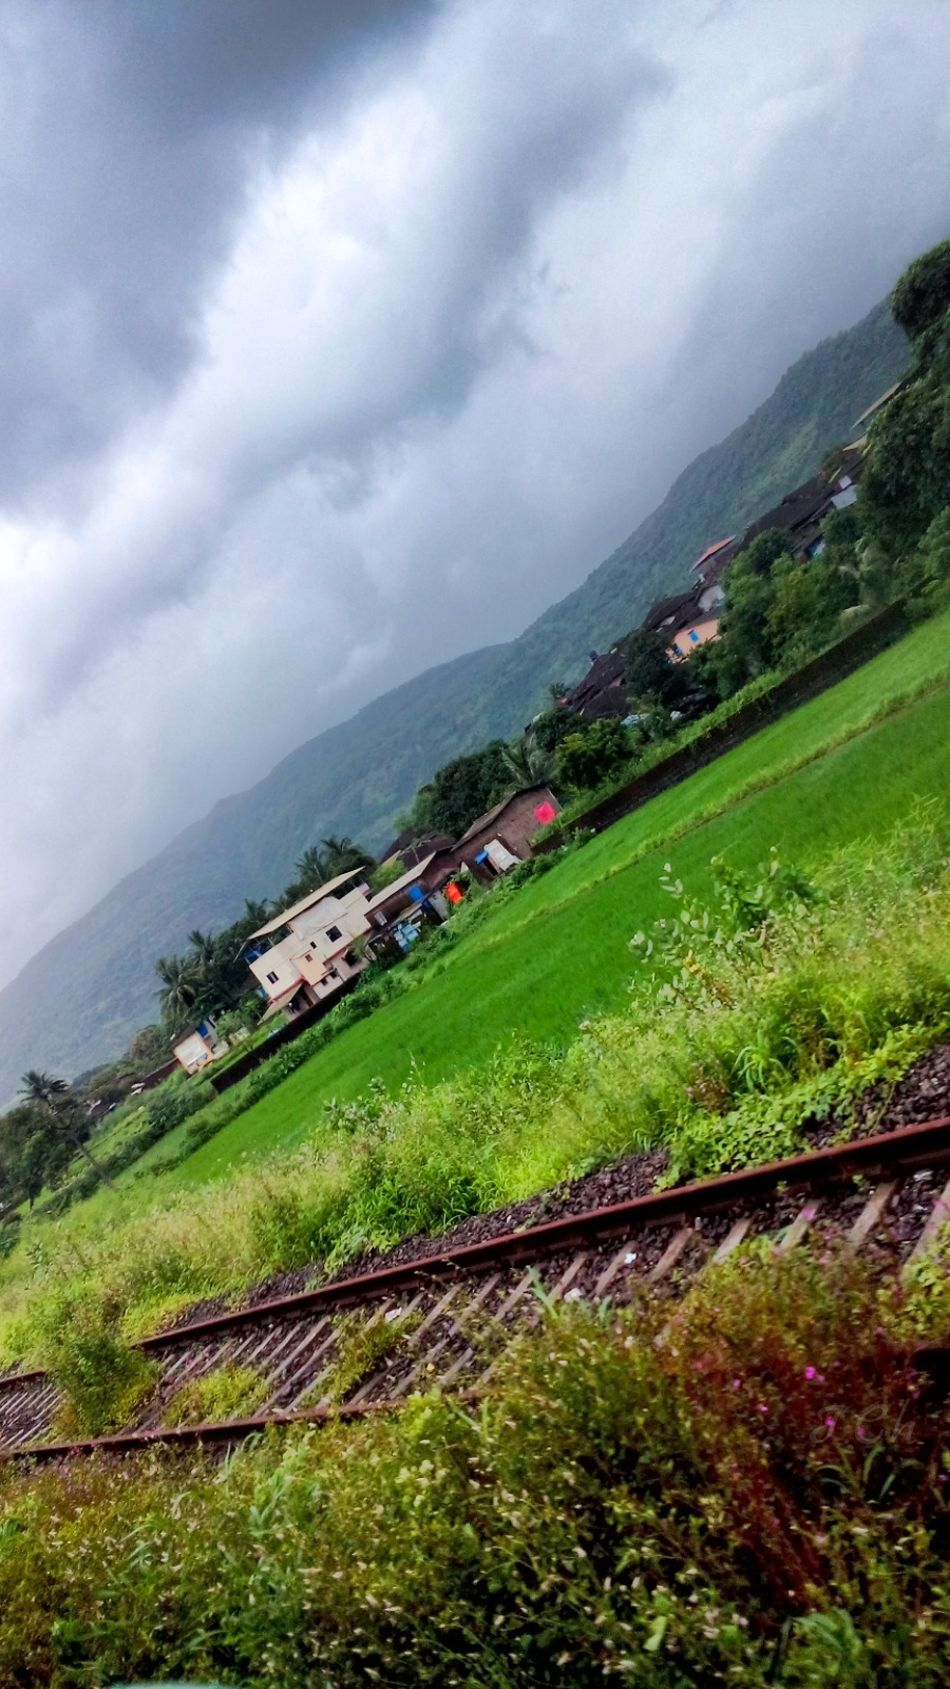 A pic from My Album While Traveling Green Green Green!  Green Green And More Green Green Grass Mountains Covered In Green Greeneryeverywhere Photo Took From The Train Window Travelling Blue Sky, Green Fields Blue Sky And Dark Clouds Houses Peace And Quiet Eye Em Nature Lover Railway Track Railway Track Green Green Green! Naturelovers Pleasent View Low Quality Photo looking this view from near and Get Relax